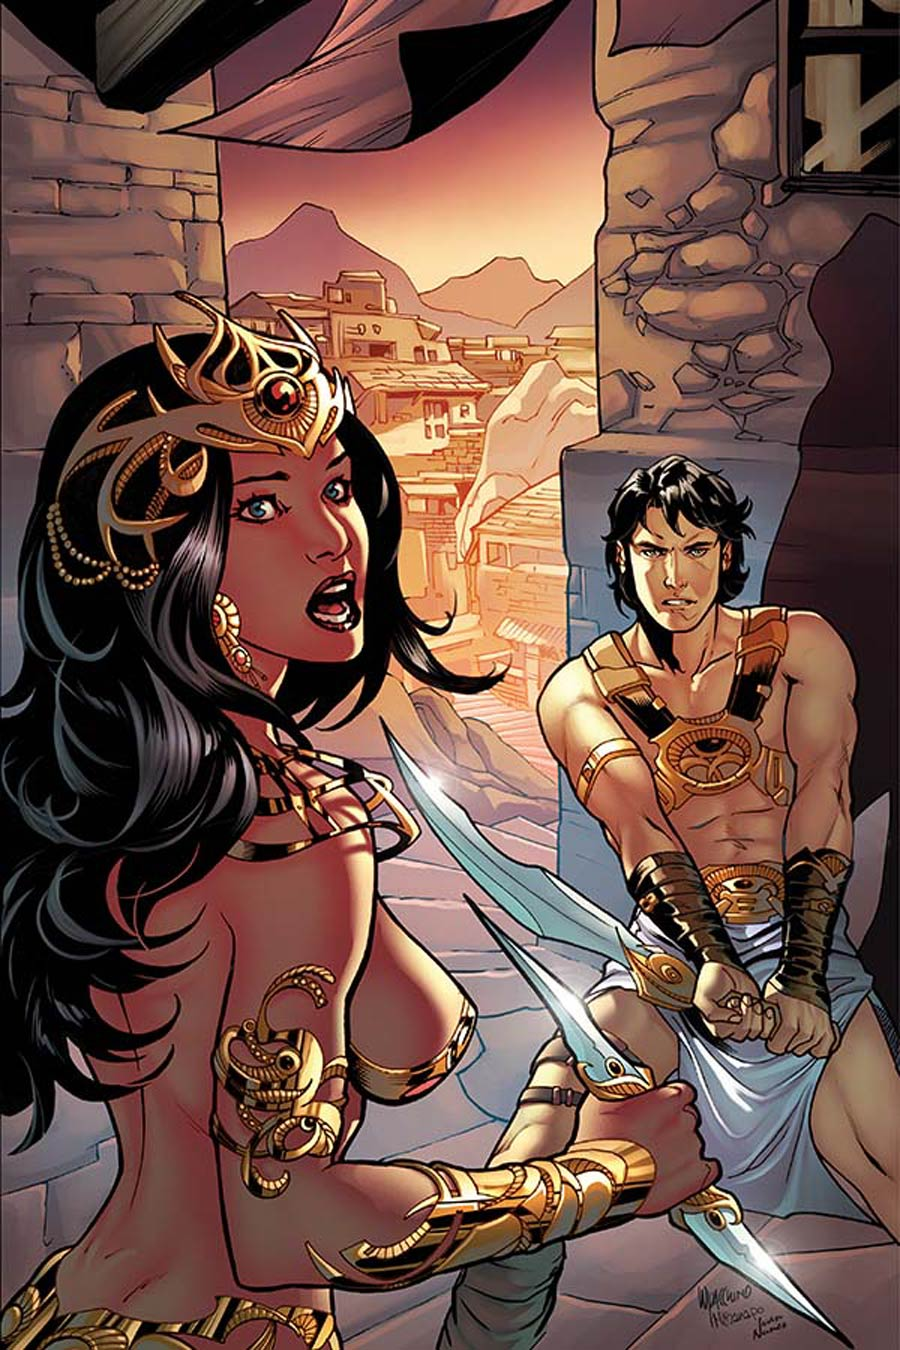 John Carter Warlord Of Mars Vol 2 #9 Cover G Incentive Emanuela Lupacchino Virgin Cover